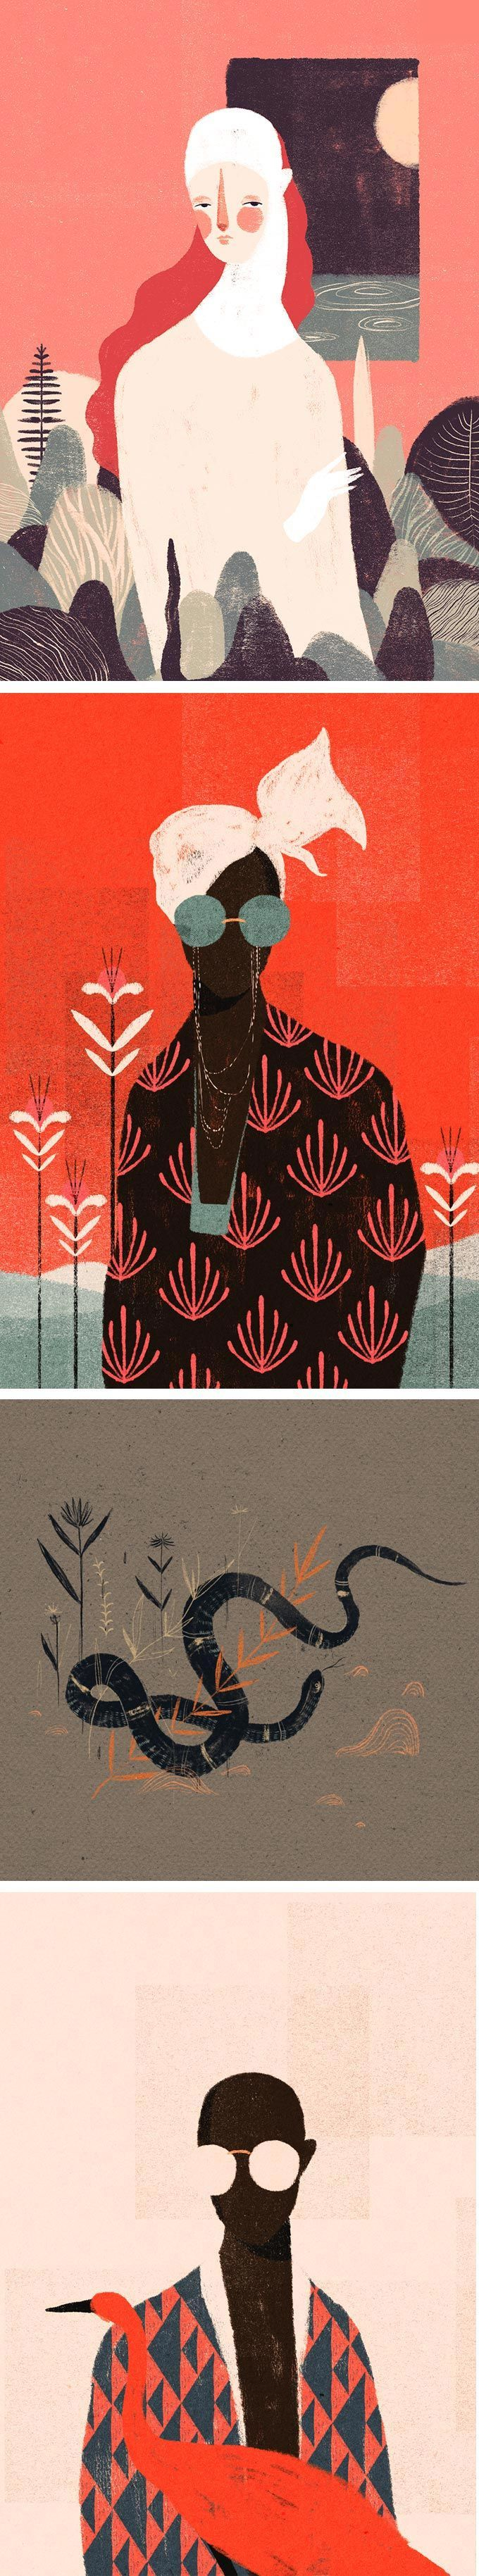 Illustrator Willian Santiago has a gorgeous way of using texture in his works.